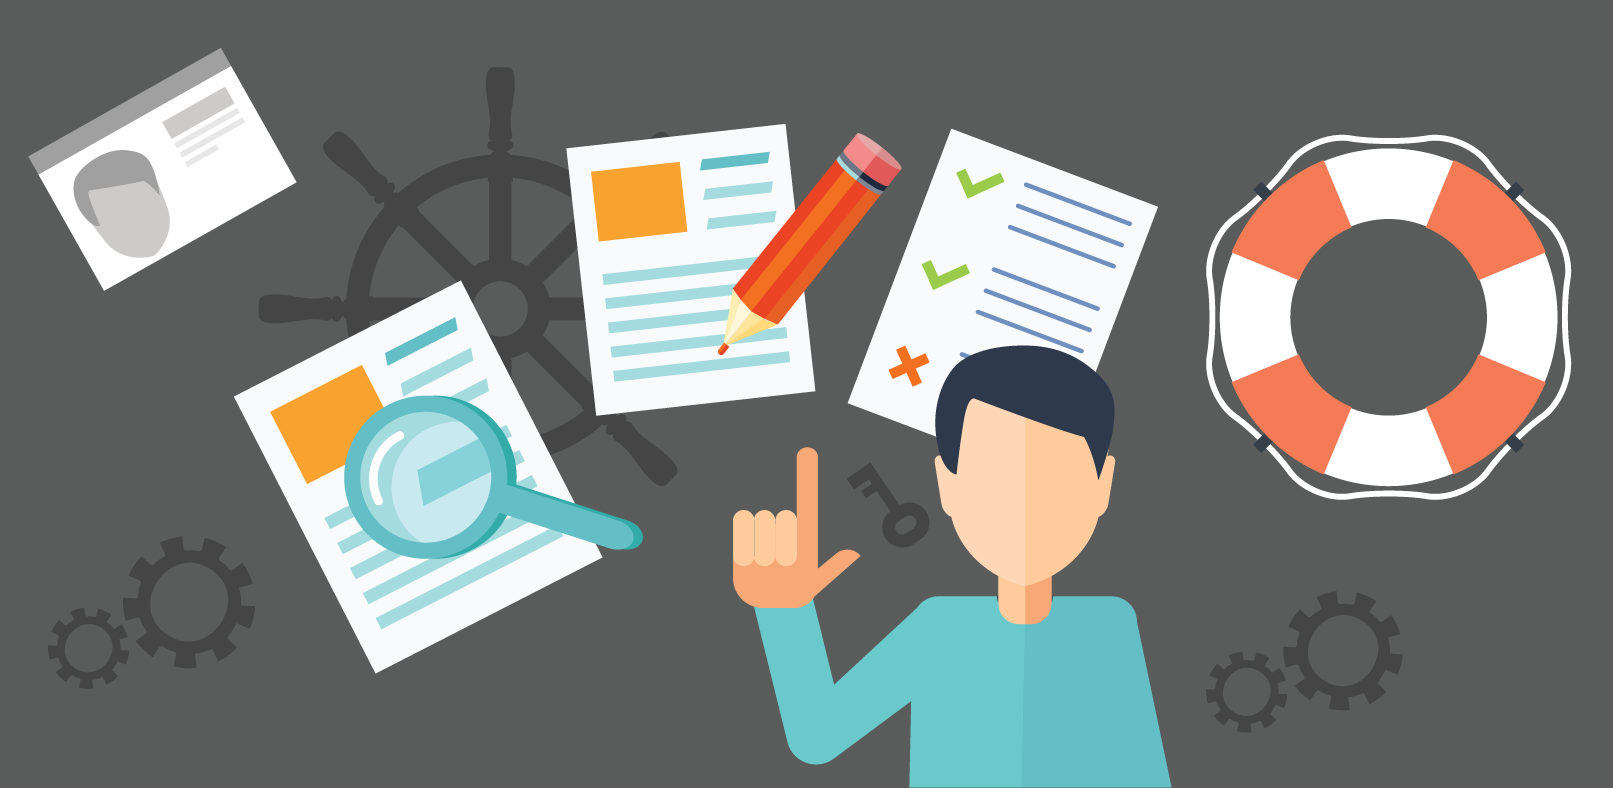 Setting Expectations During New Hire Onboarding